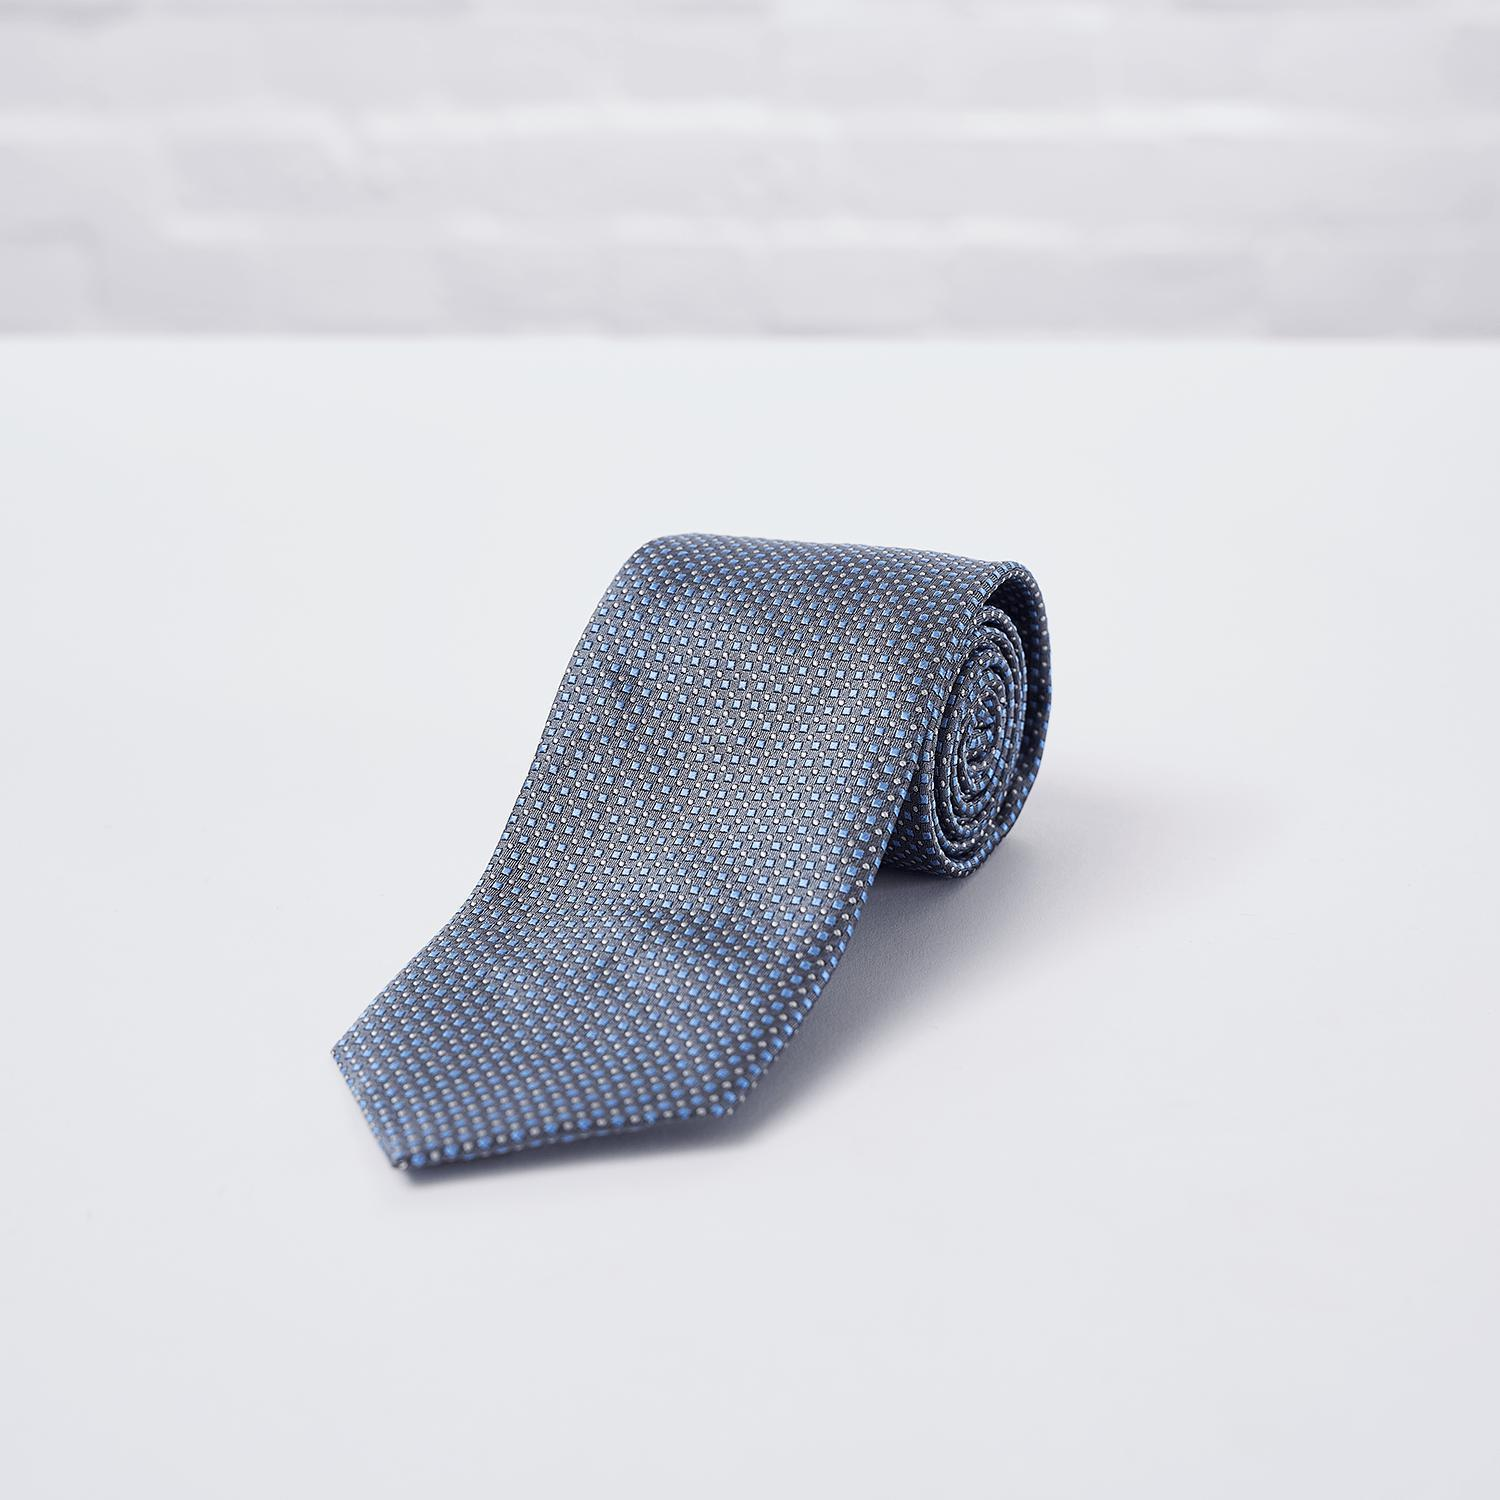 Grey Square Spot Woven Silk Tie - British Made